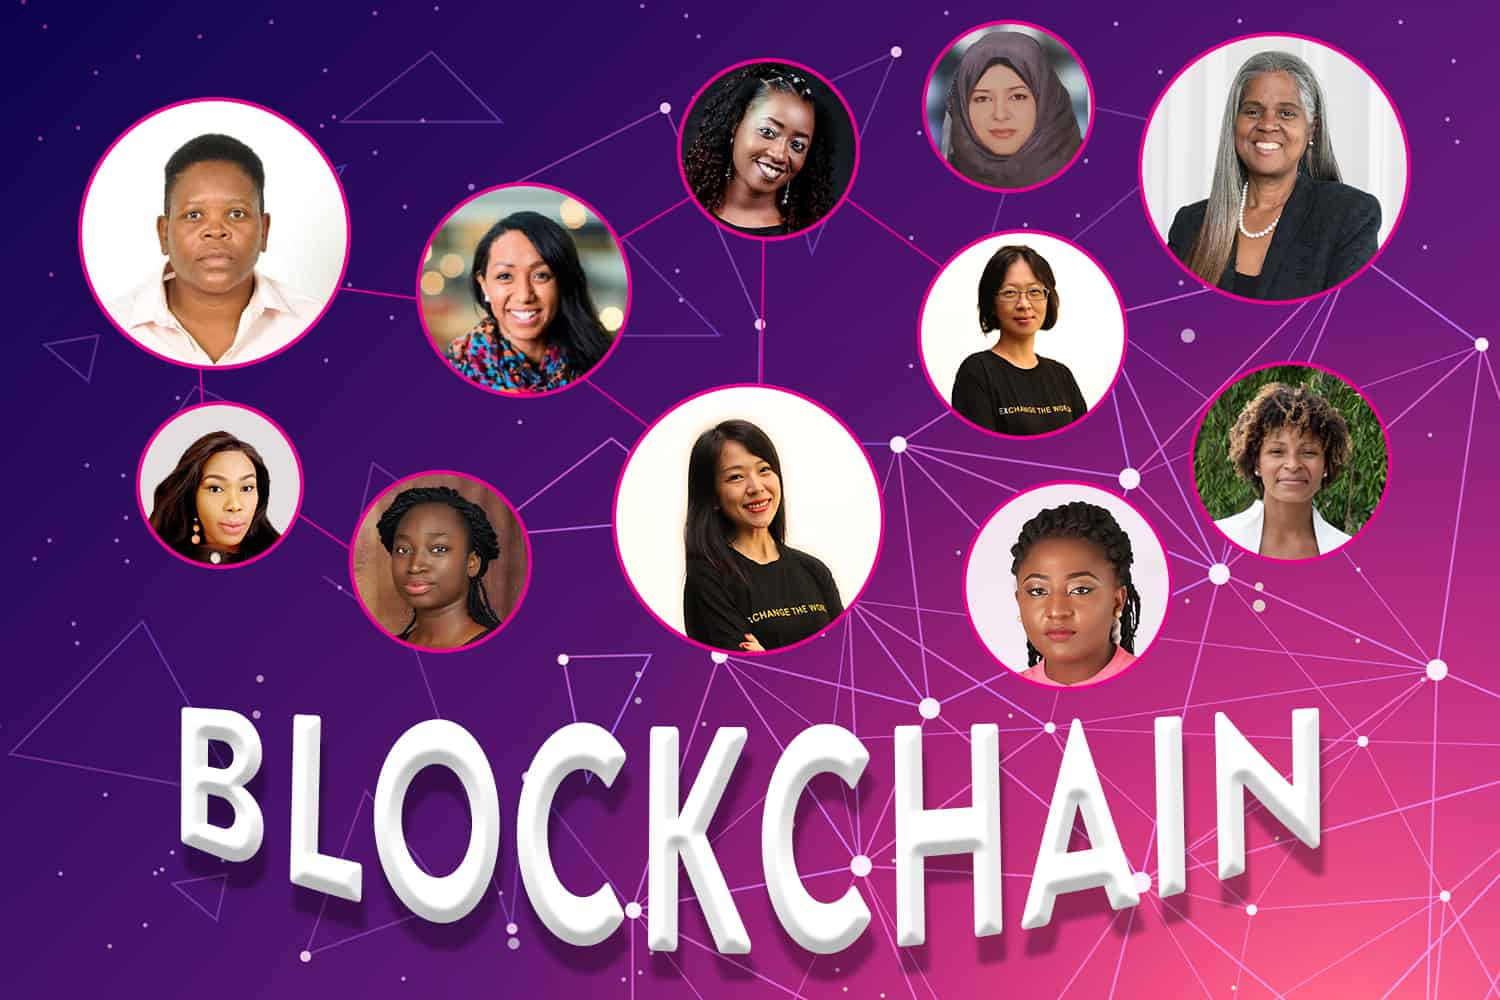 International women's day: celebrating women in blockchain